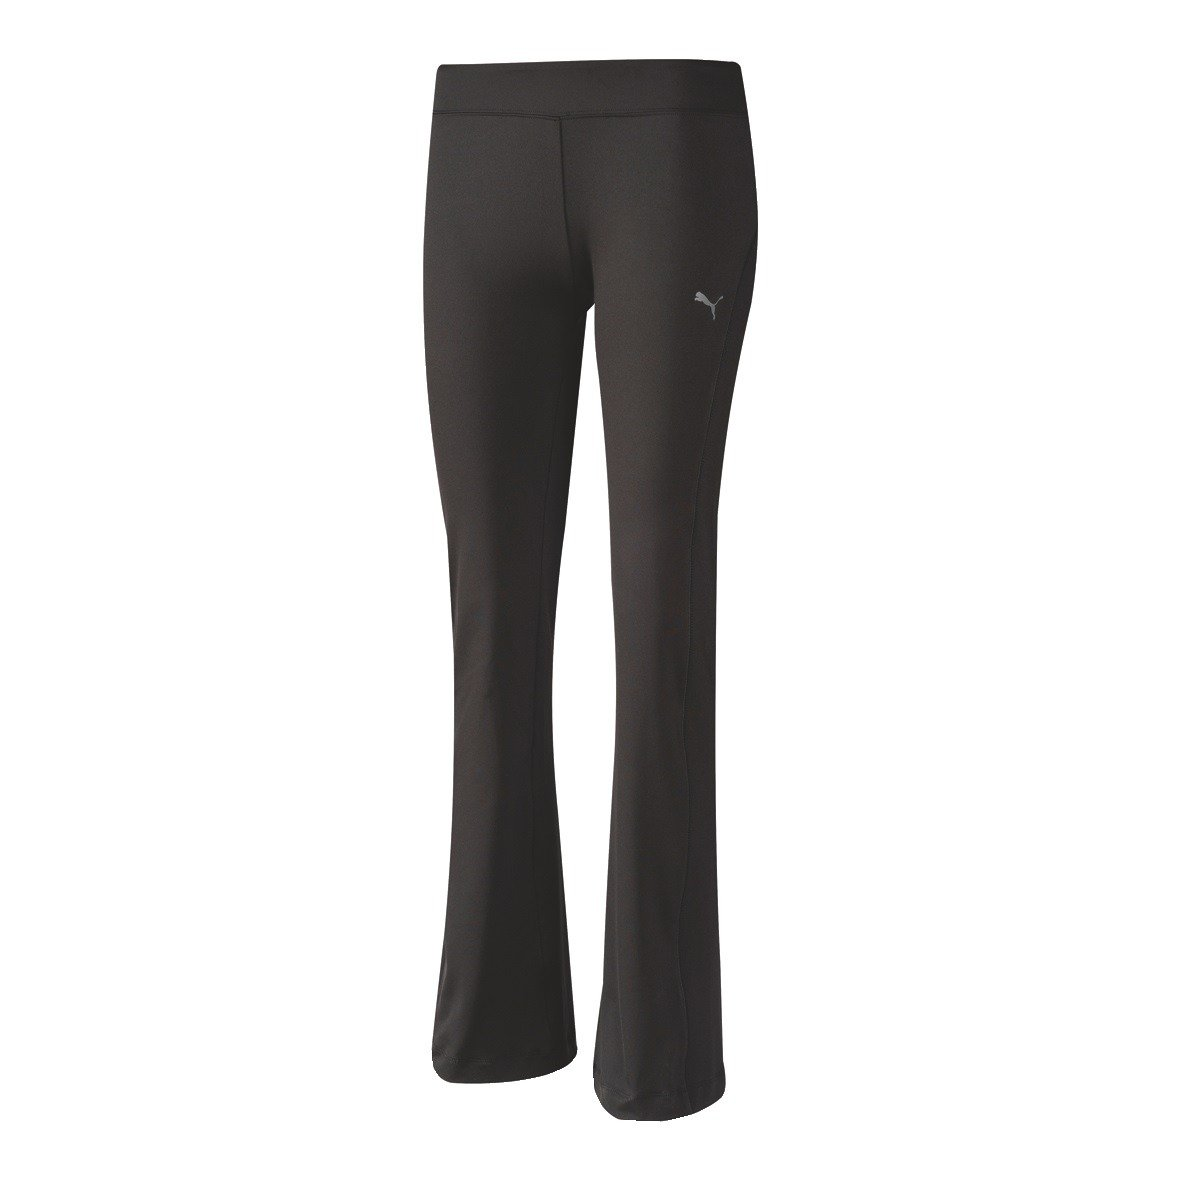 Puma – Puma essential gym regular pants fra billigsport24